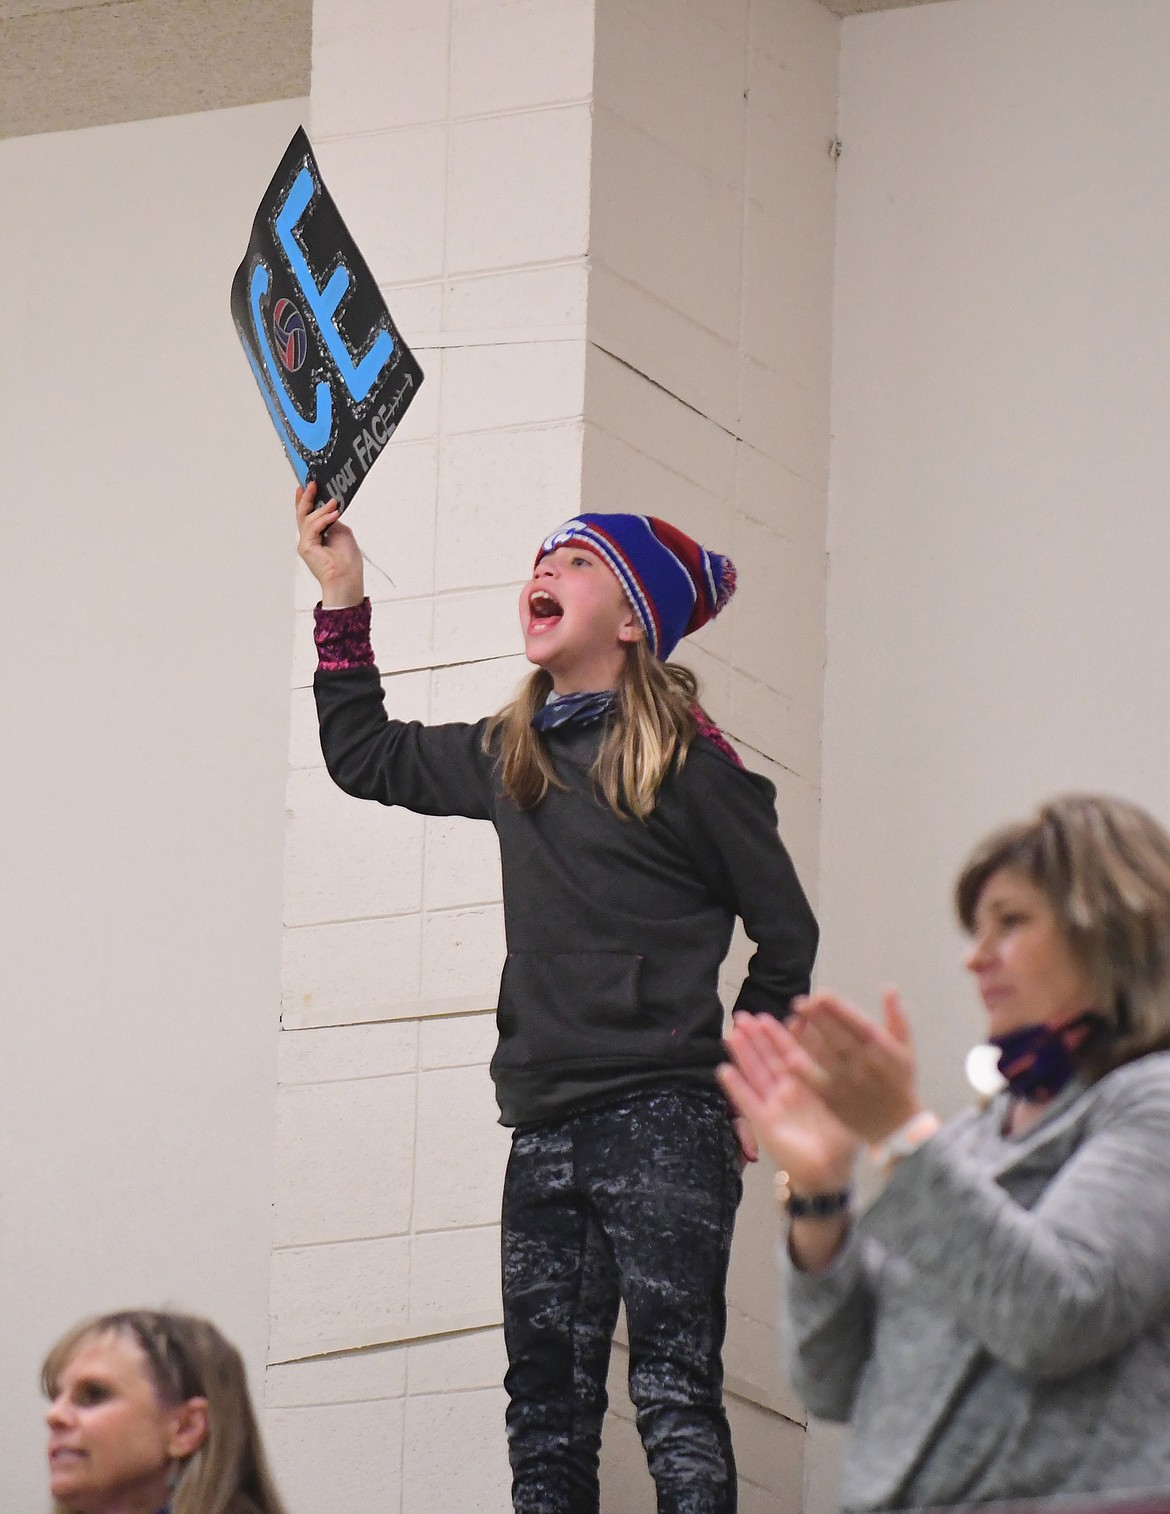 Jezanie Brooks stokes fan spirit for the Wildkats during the State A volleyball tournament in Sidney last week. (Teresa Byrd/Hungry Horse News)